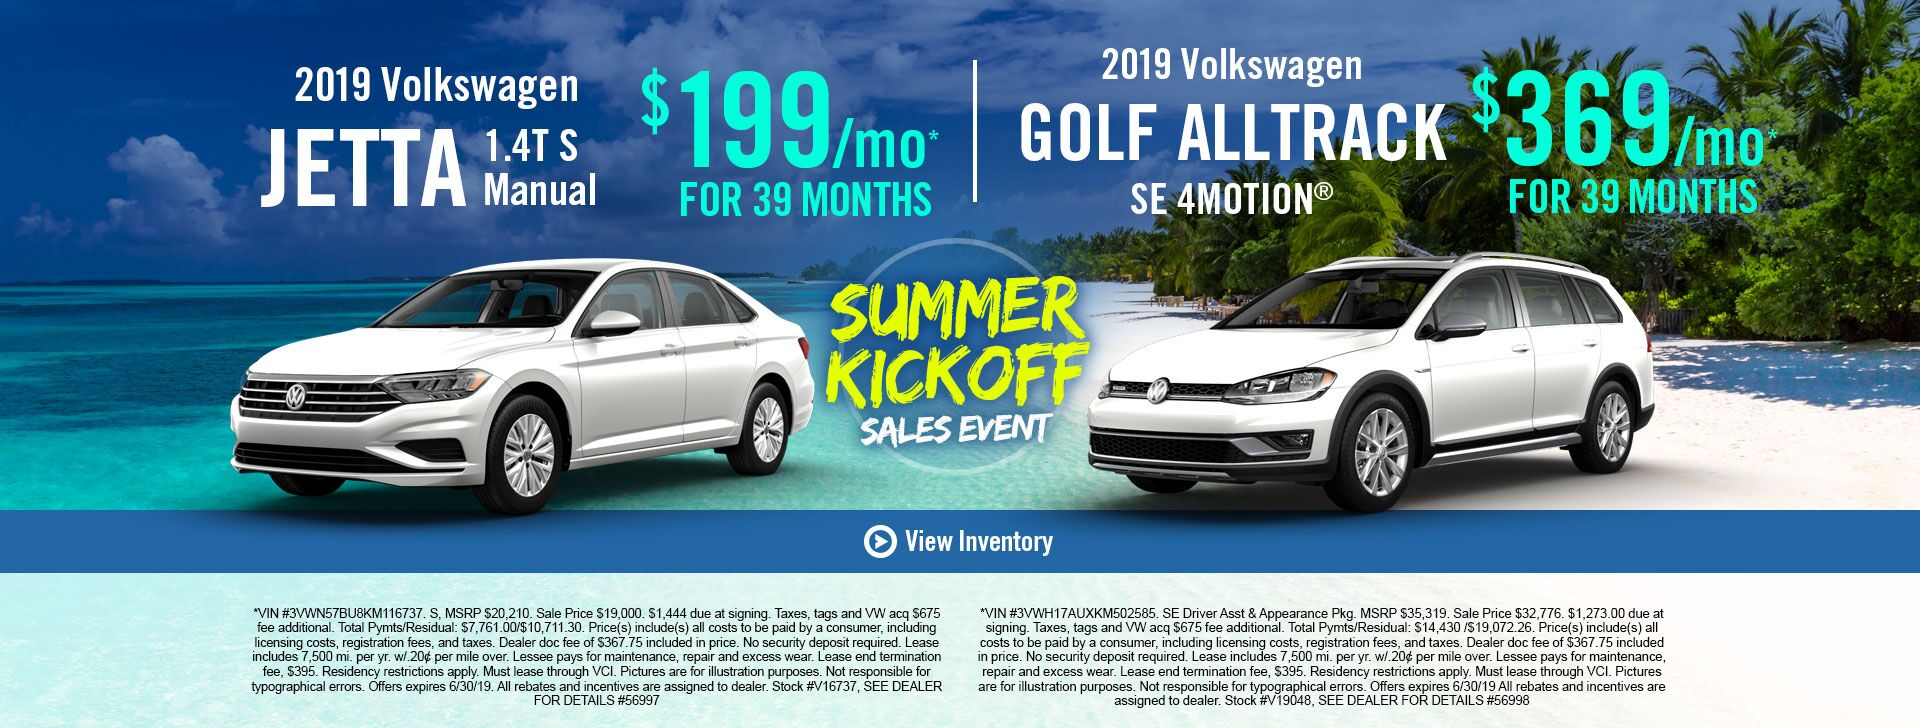 Jetta and Golf All Track